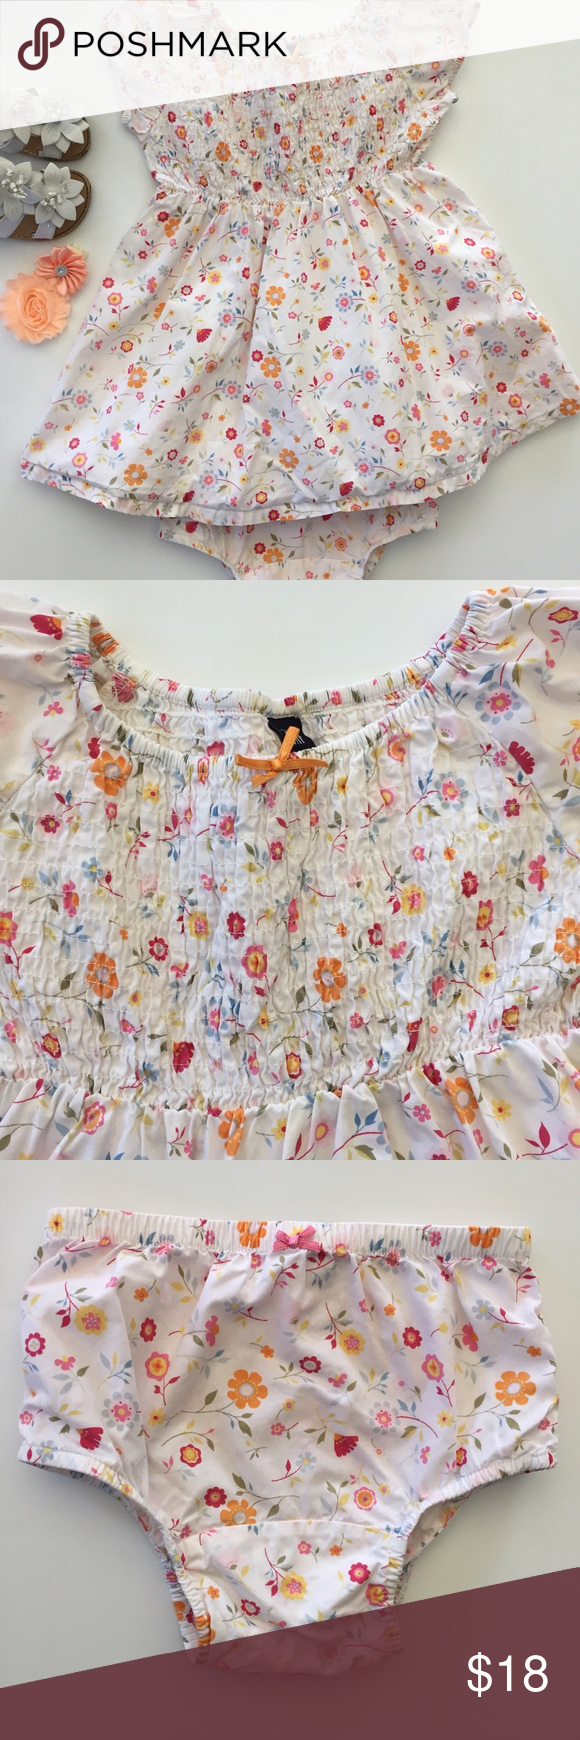 Baby Gap Special Occasion Dress Lovely white dress with dainty floral pattern.  It's perfect to bring in the Spring and wear for pictures or on holidays.  It has a smock chest, cap sleeves with elasticized hems, and matching bloomers. Size 18-24M but fit up through 2T.  Shoes and hair bow sold separately. GAP Dresses